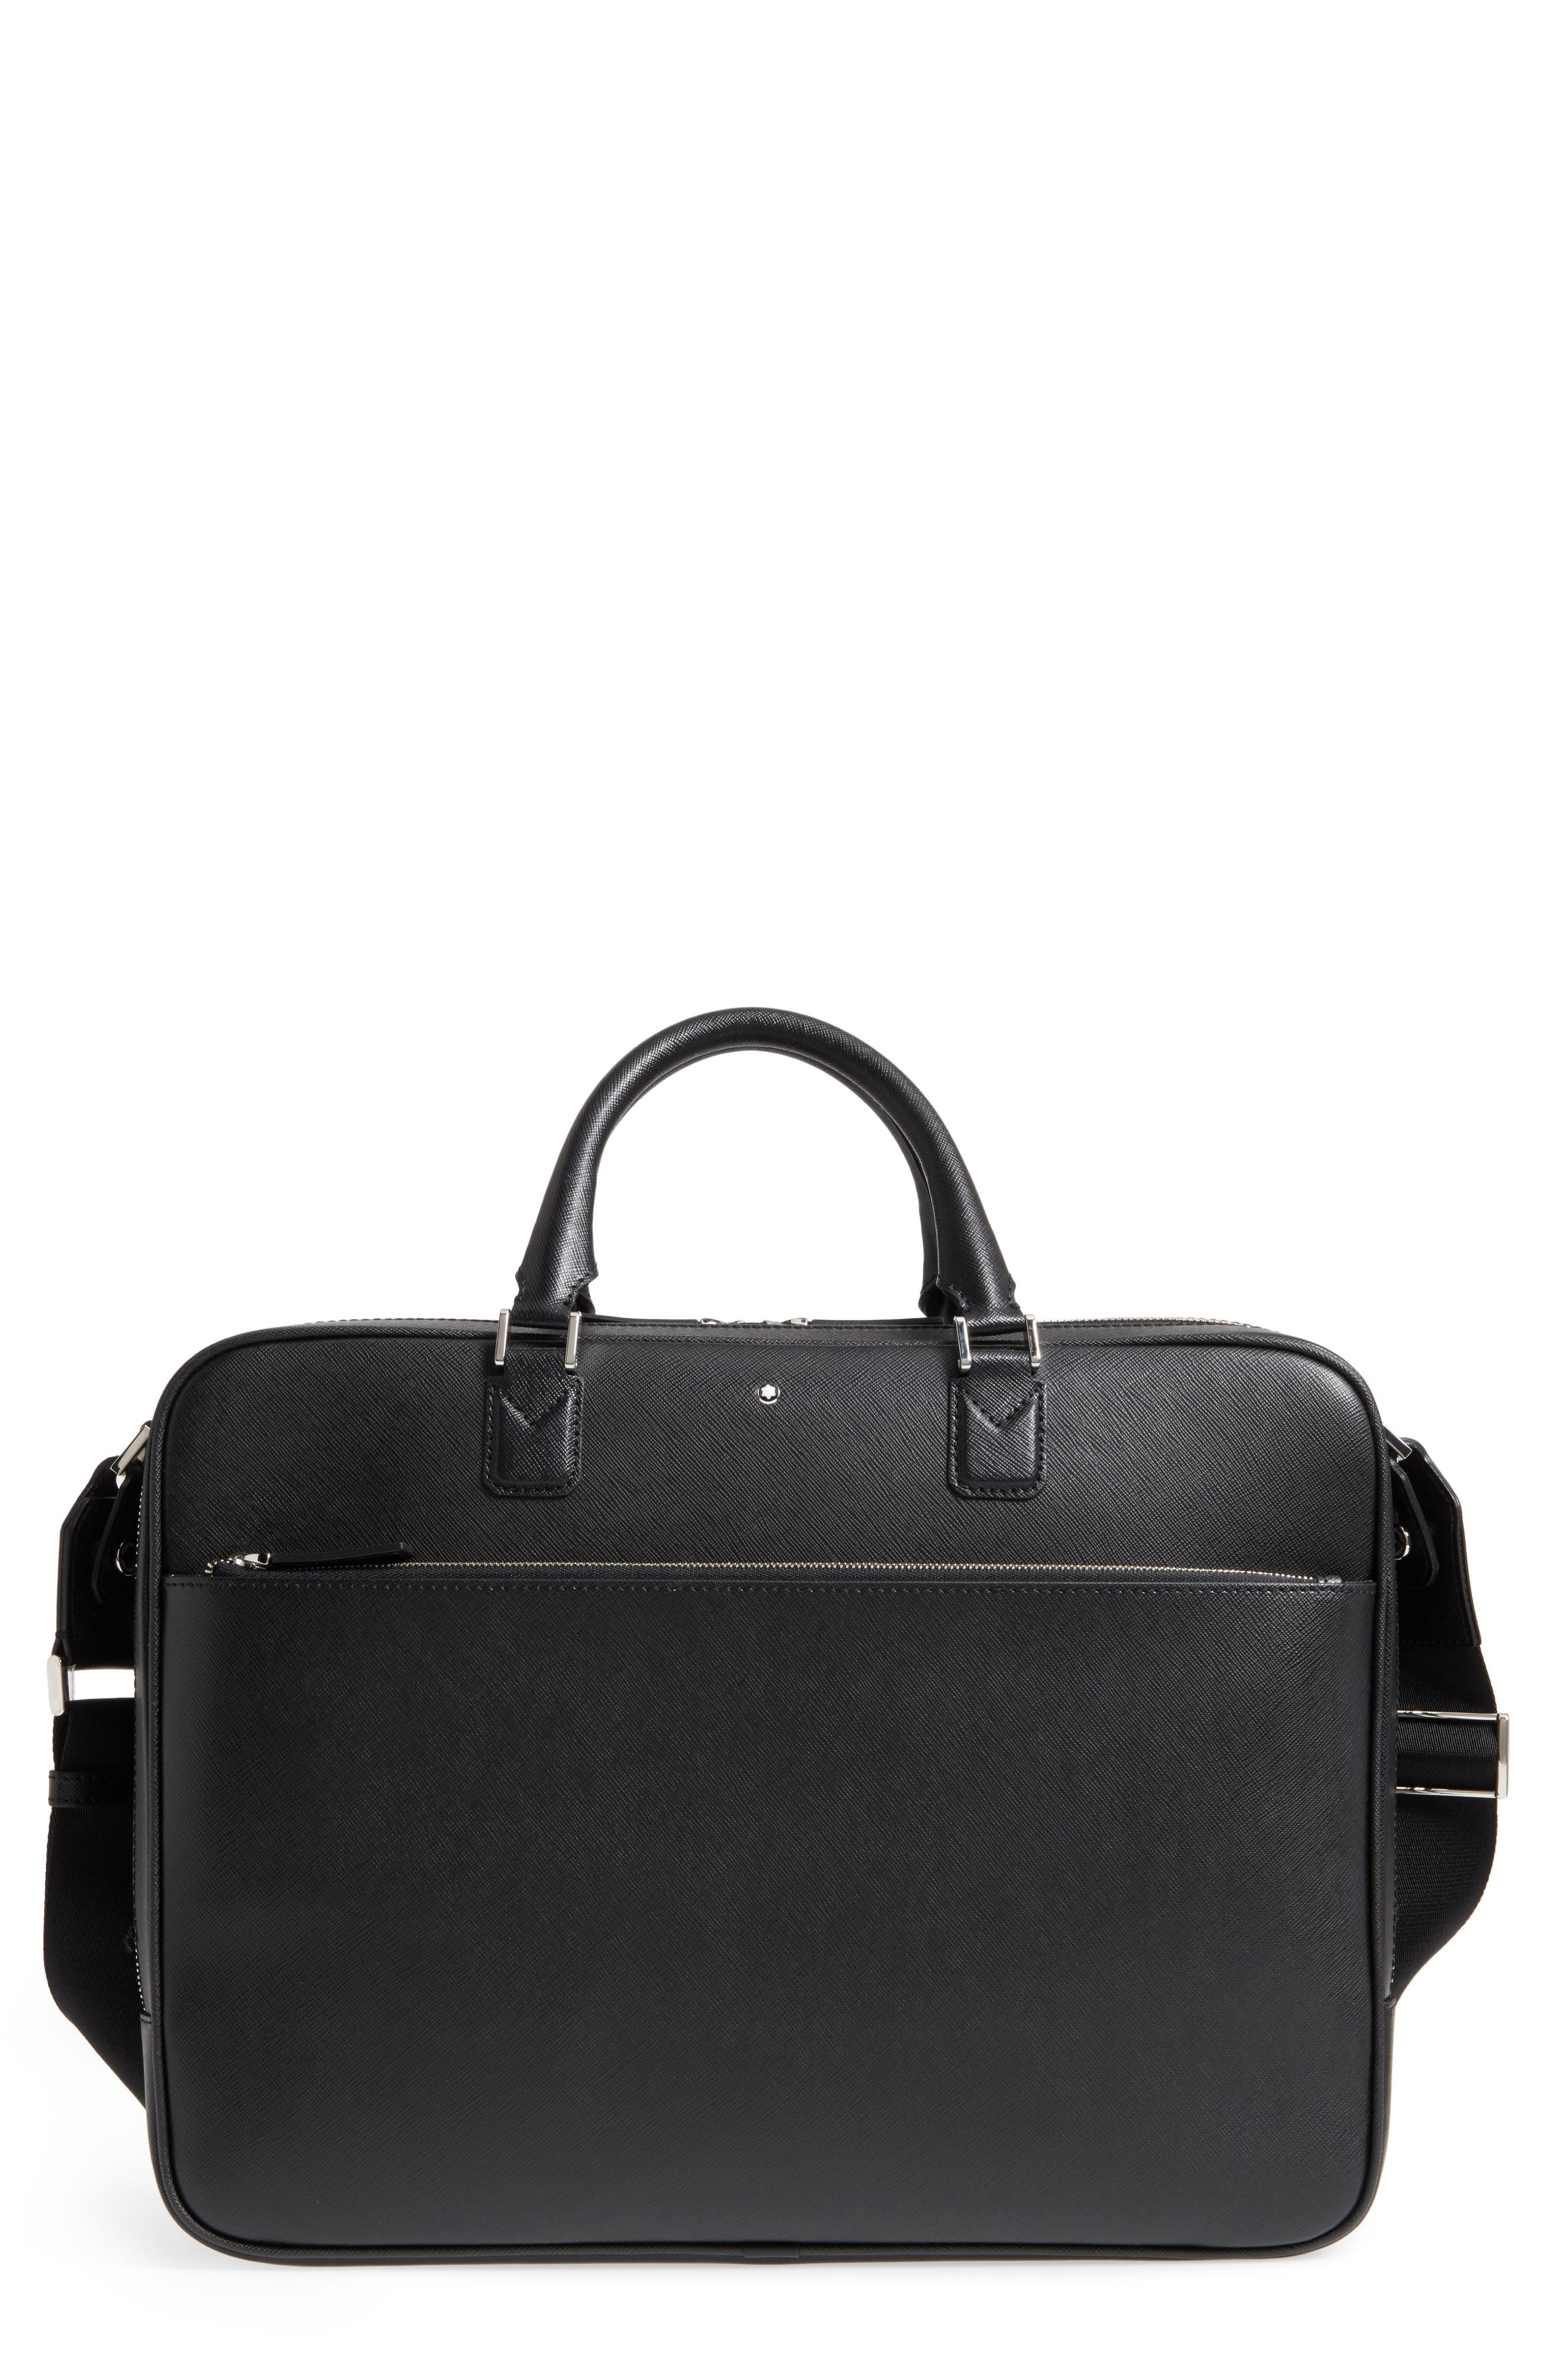 MONTBLANC, Sartorial Leather Briefcase, Main thumbnail 1, color, 001